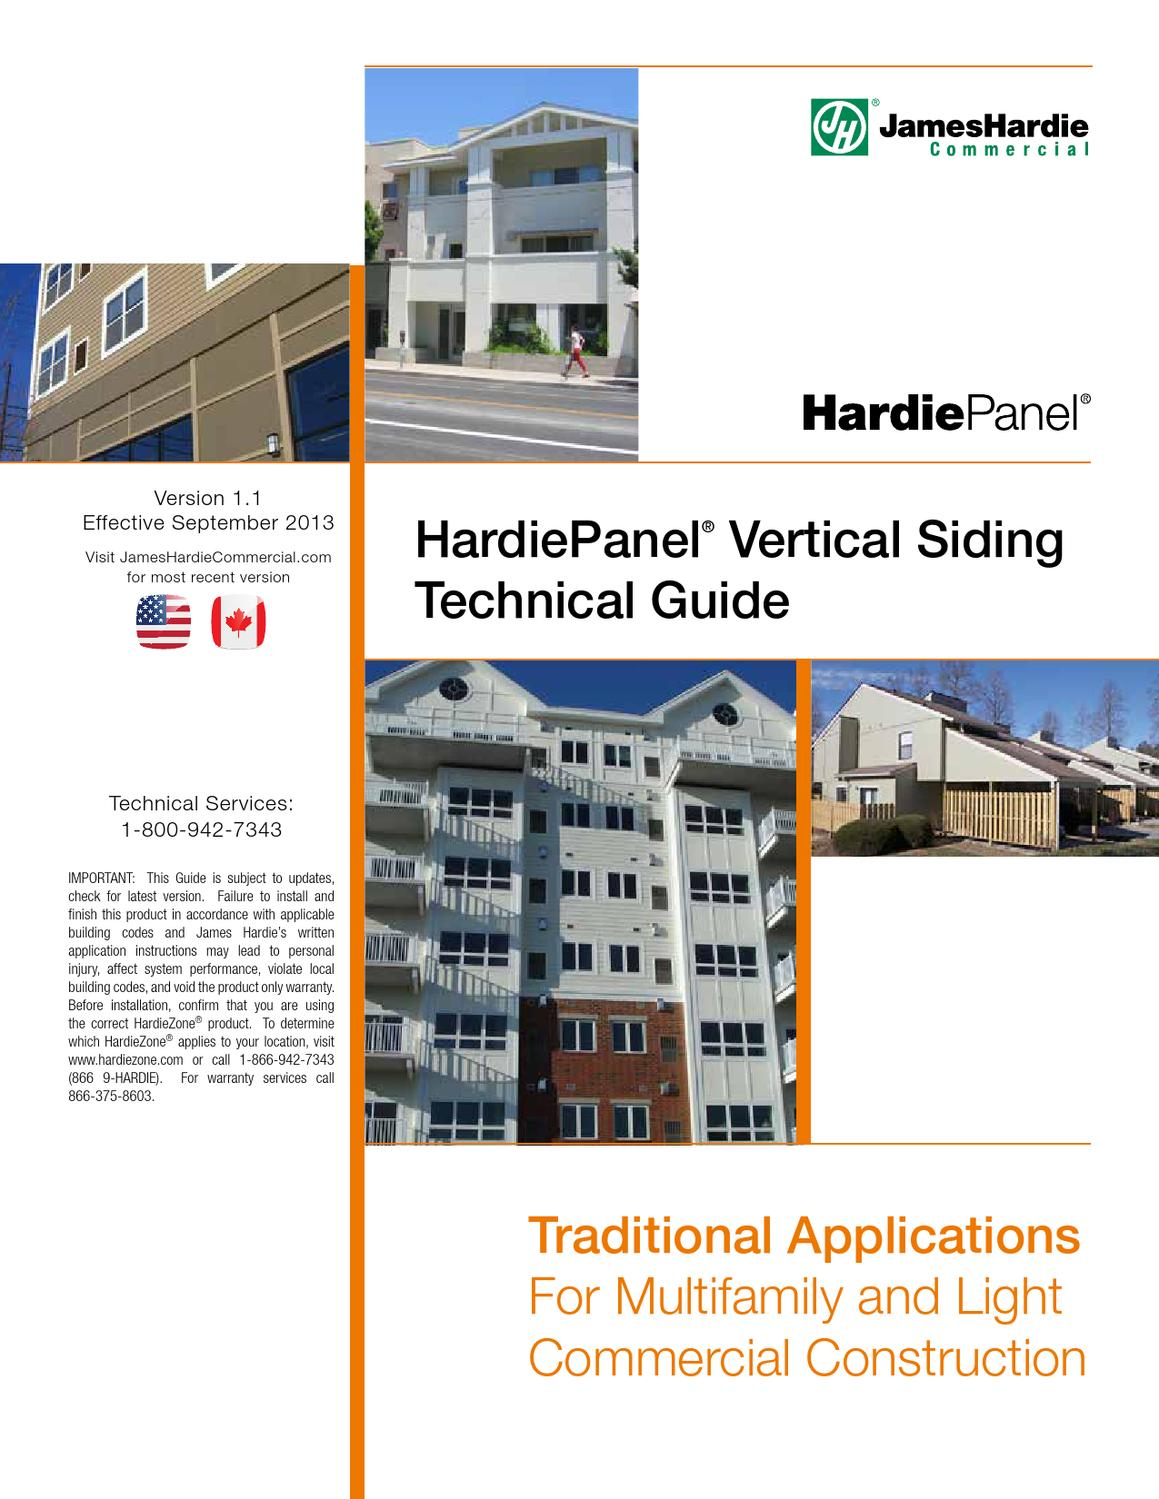 Hardiepanel 174 Vertical Siding Technical Guide By Buildingonline Of Florida Issuu